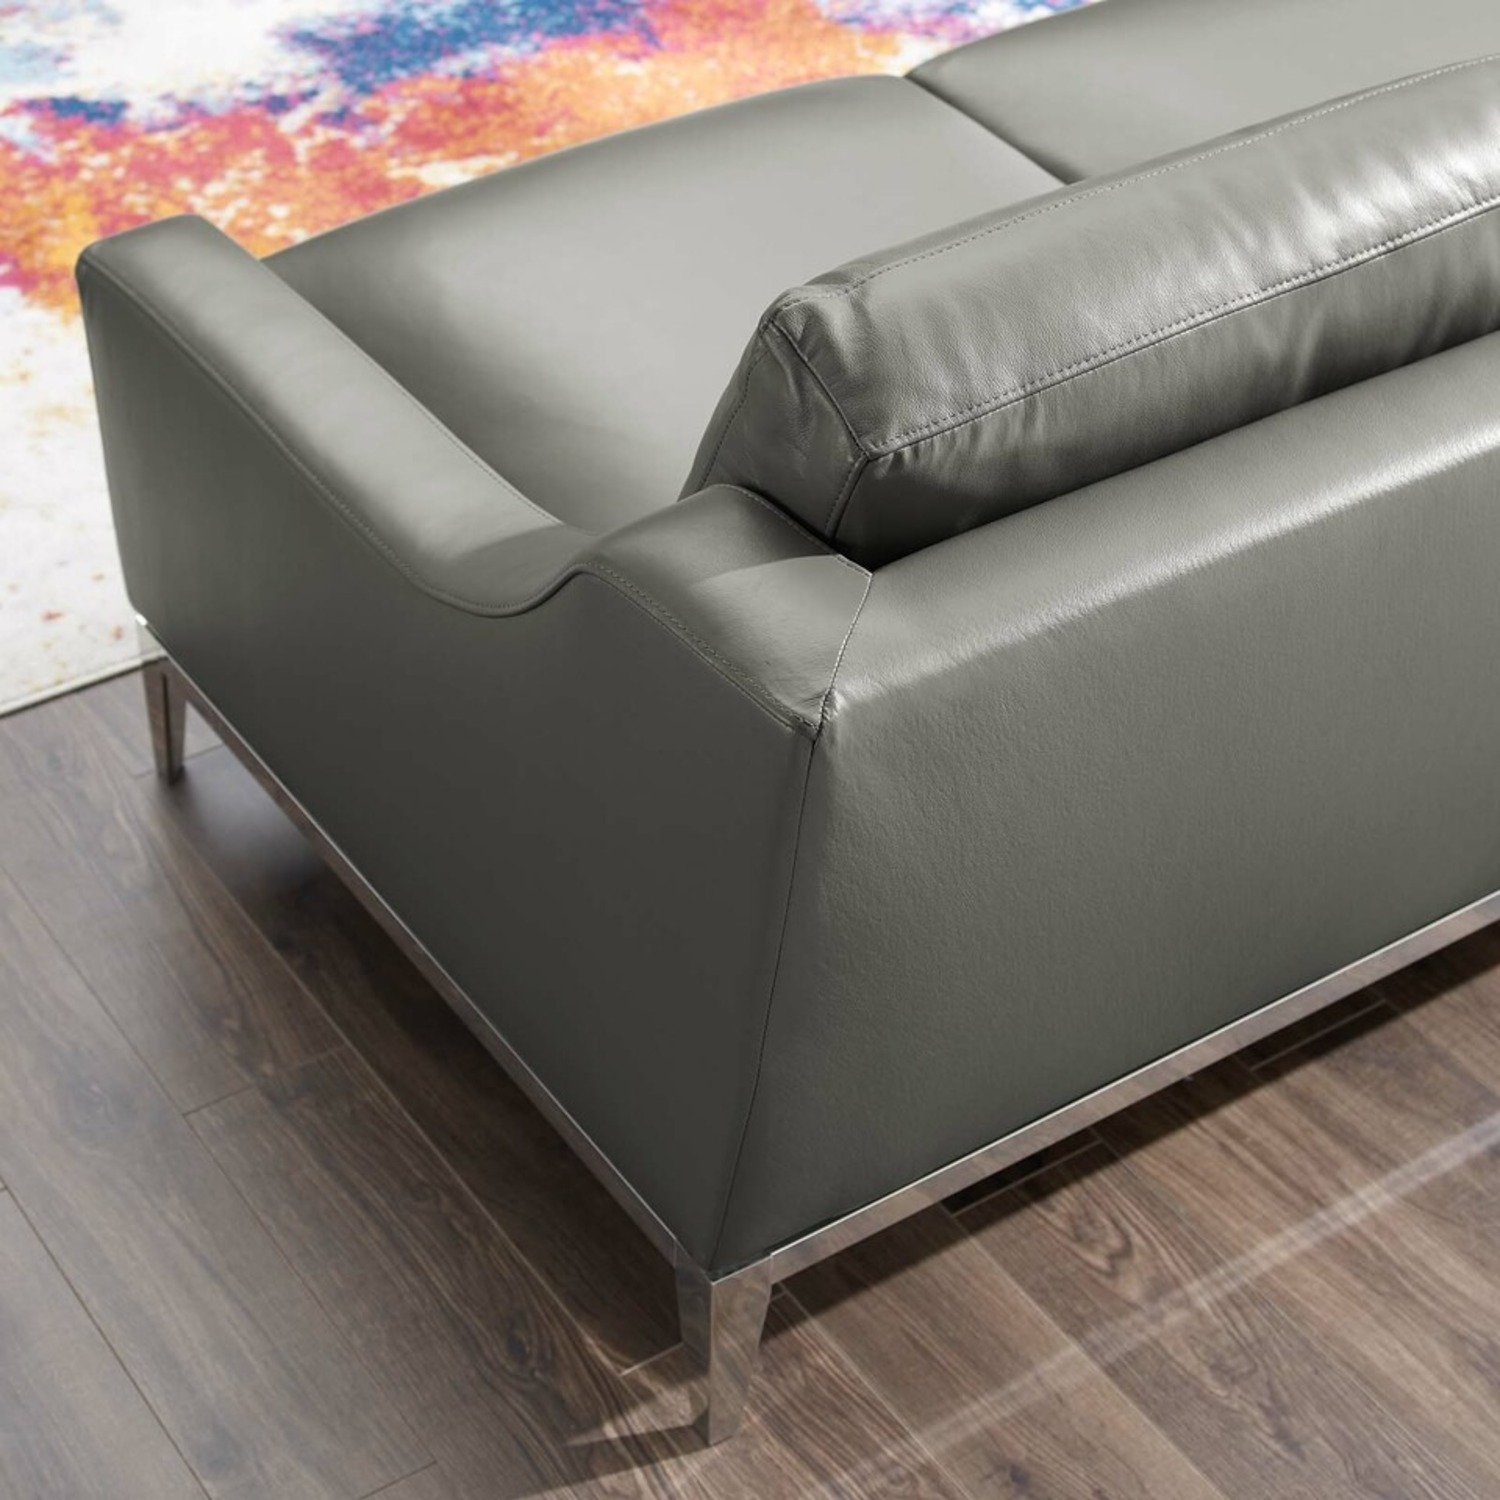 Loveseat In Gray Leather W/ Stainless Steel Base - image-4